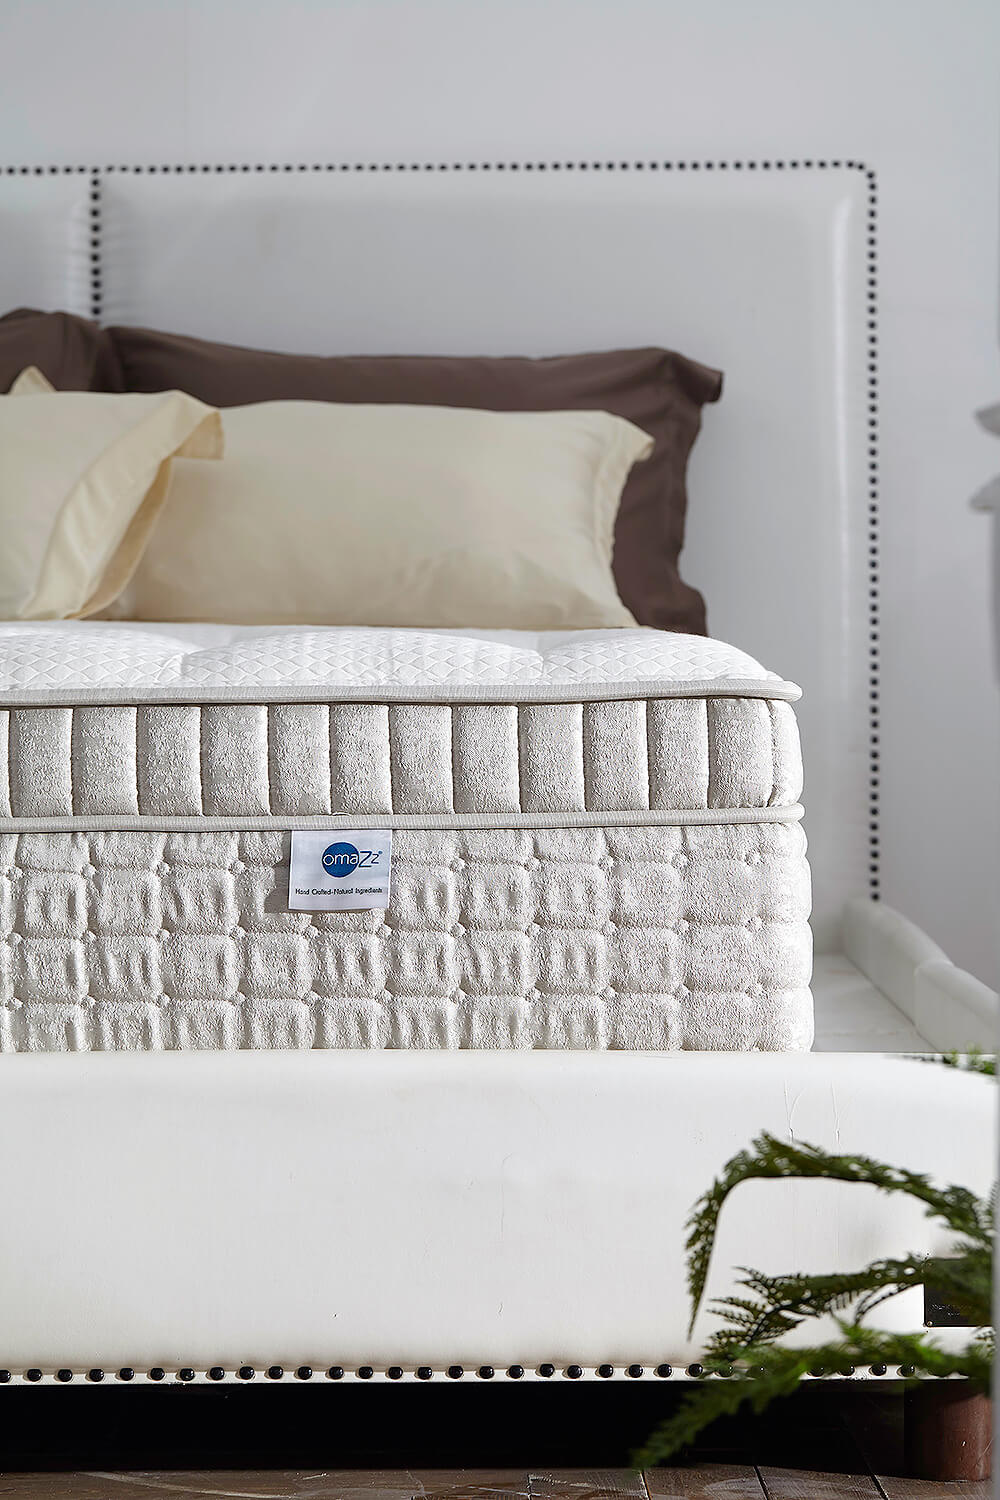 Omazz Mattress French Totto